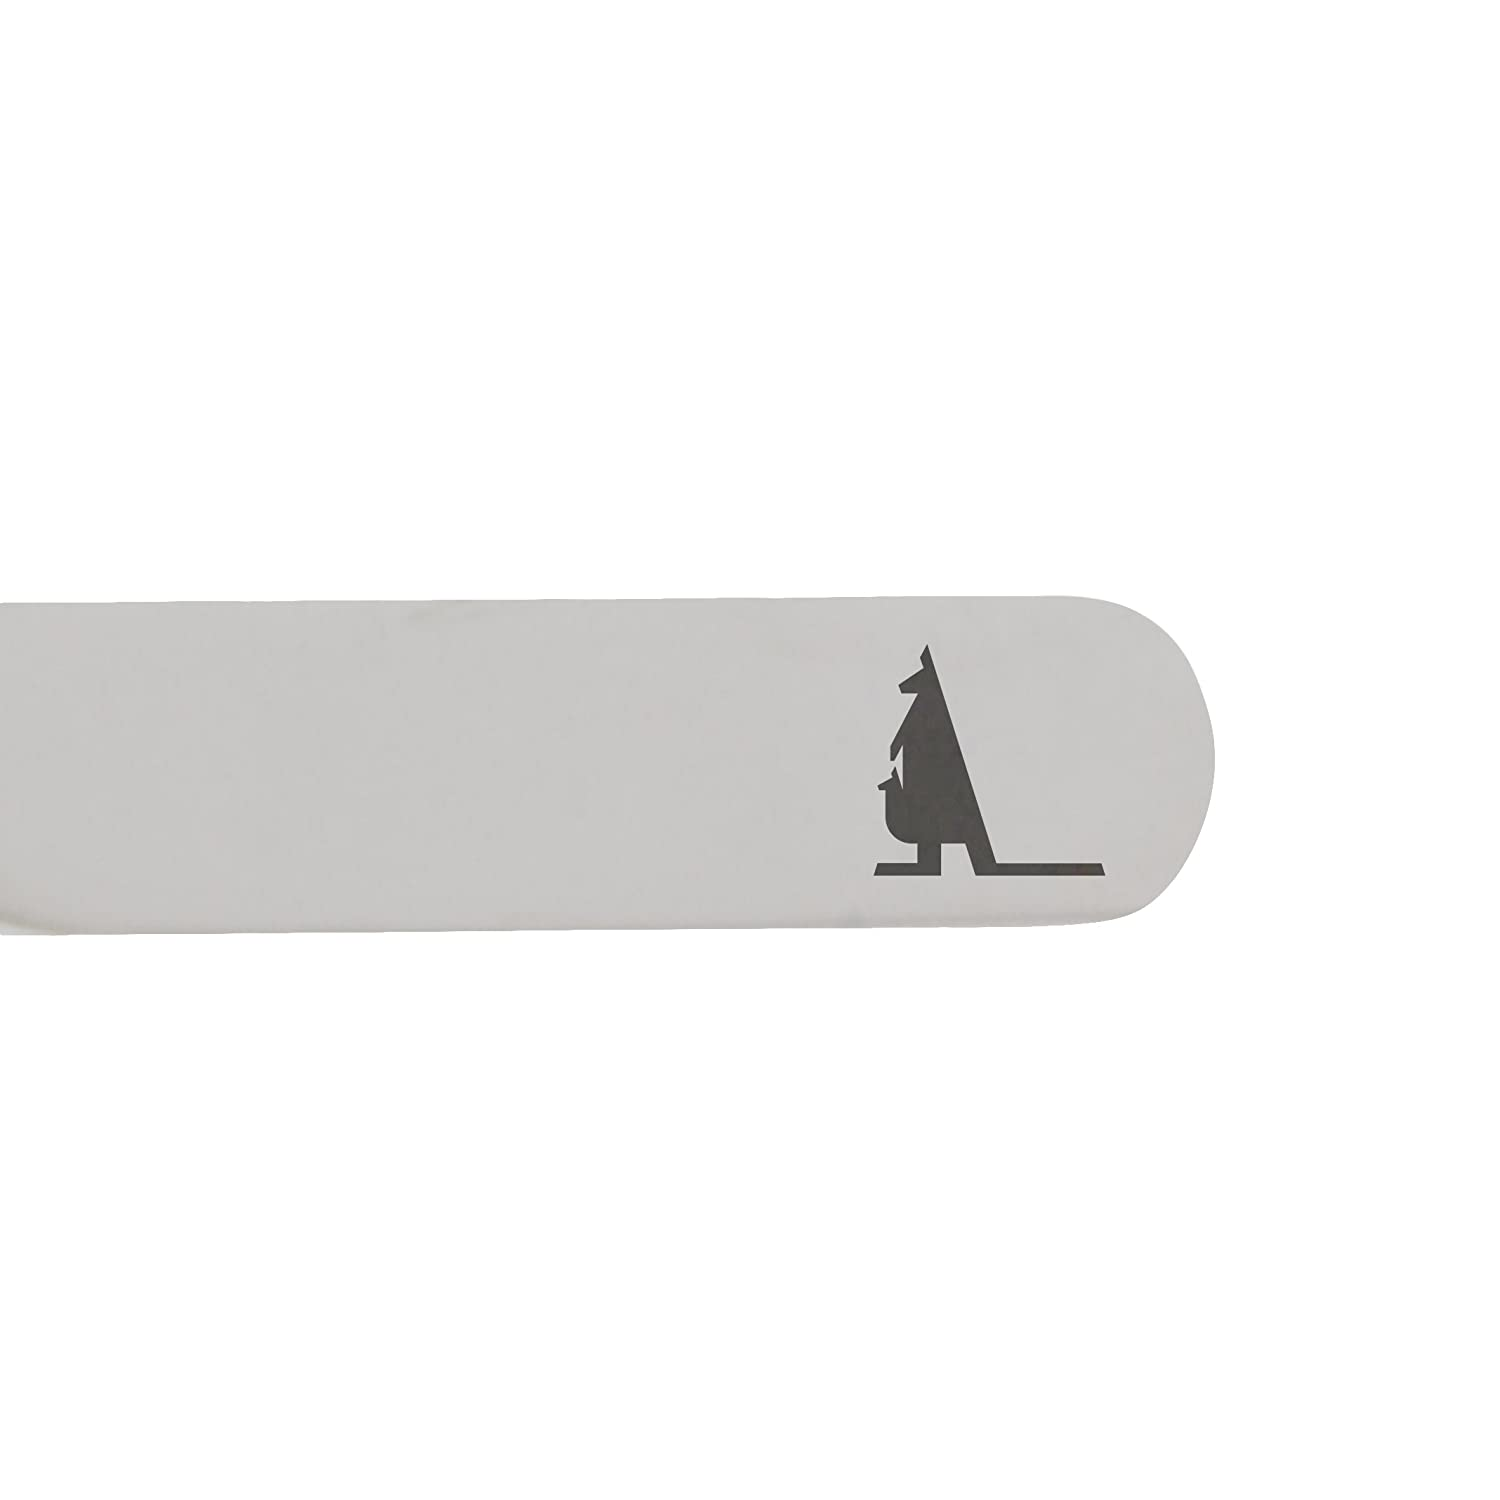 MODERN GOODS SHOP Stainless Steel Collar Stays With Laser Engraved Wallaby Design 2.5 Inch Metal Collar Stiffeners Made In USA